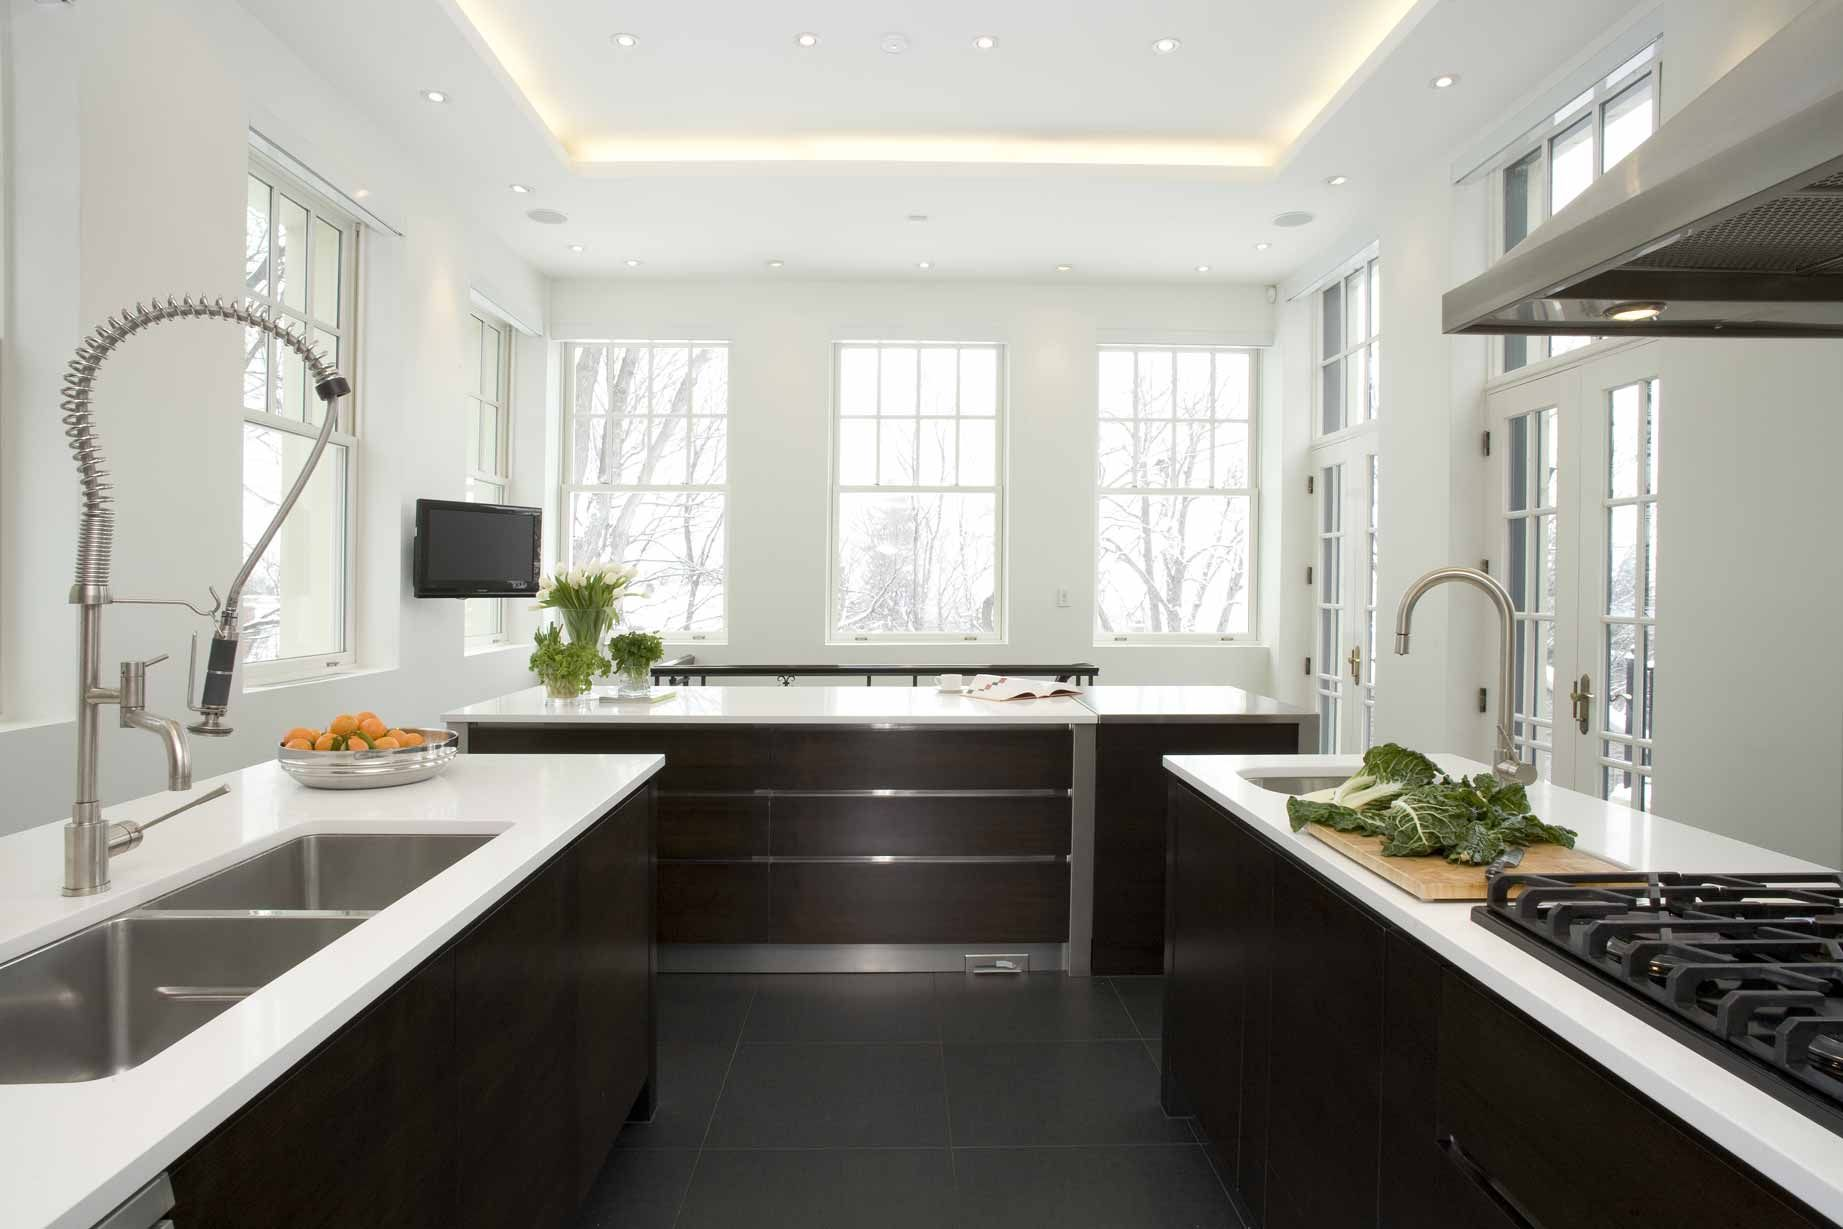 cooking kitchen cuisine on closets by pin food armoires portefolio lasalle armoire comptoirs